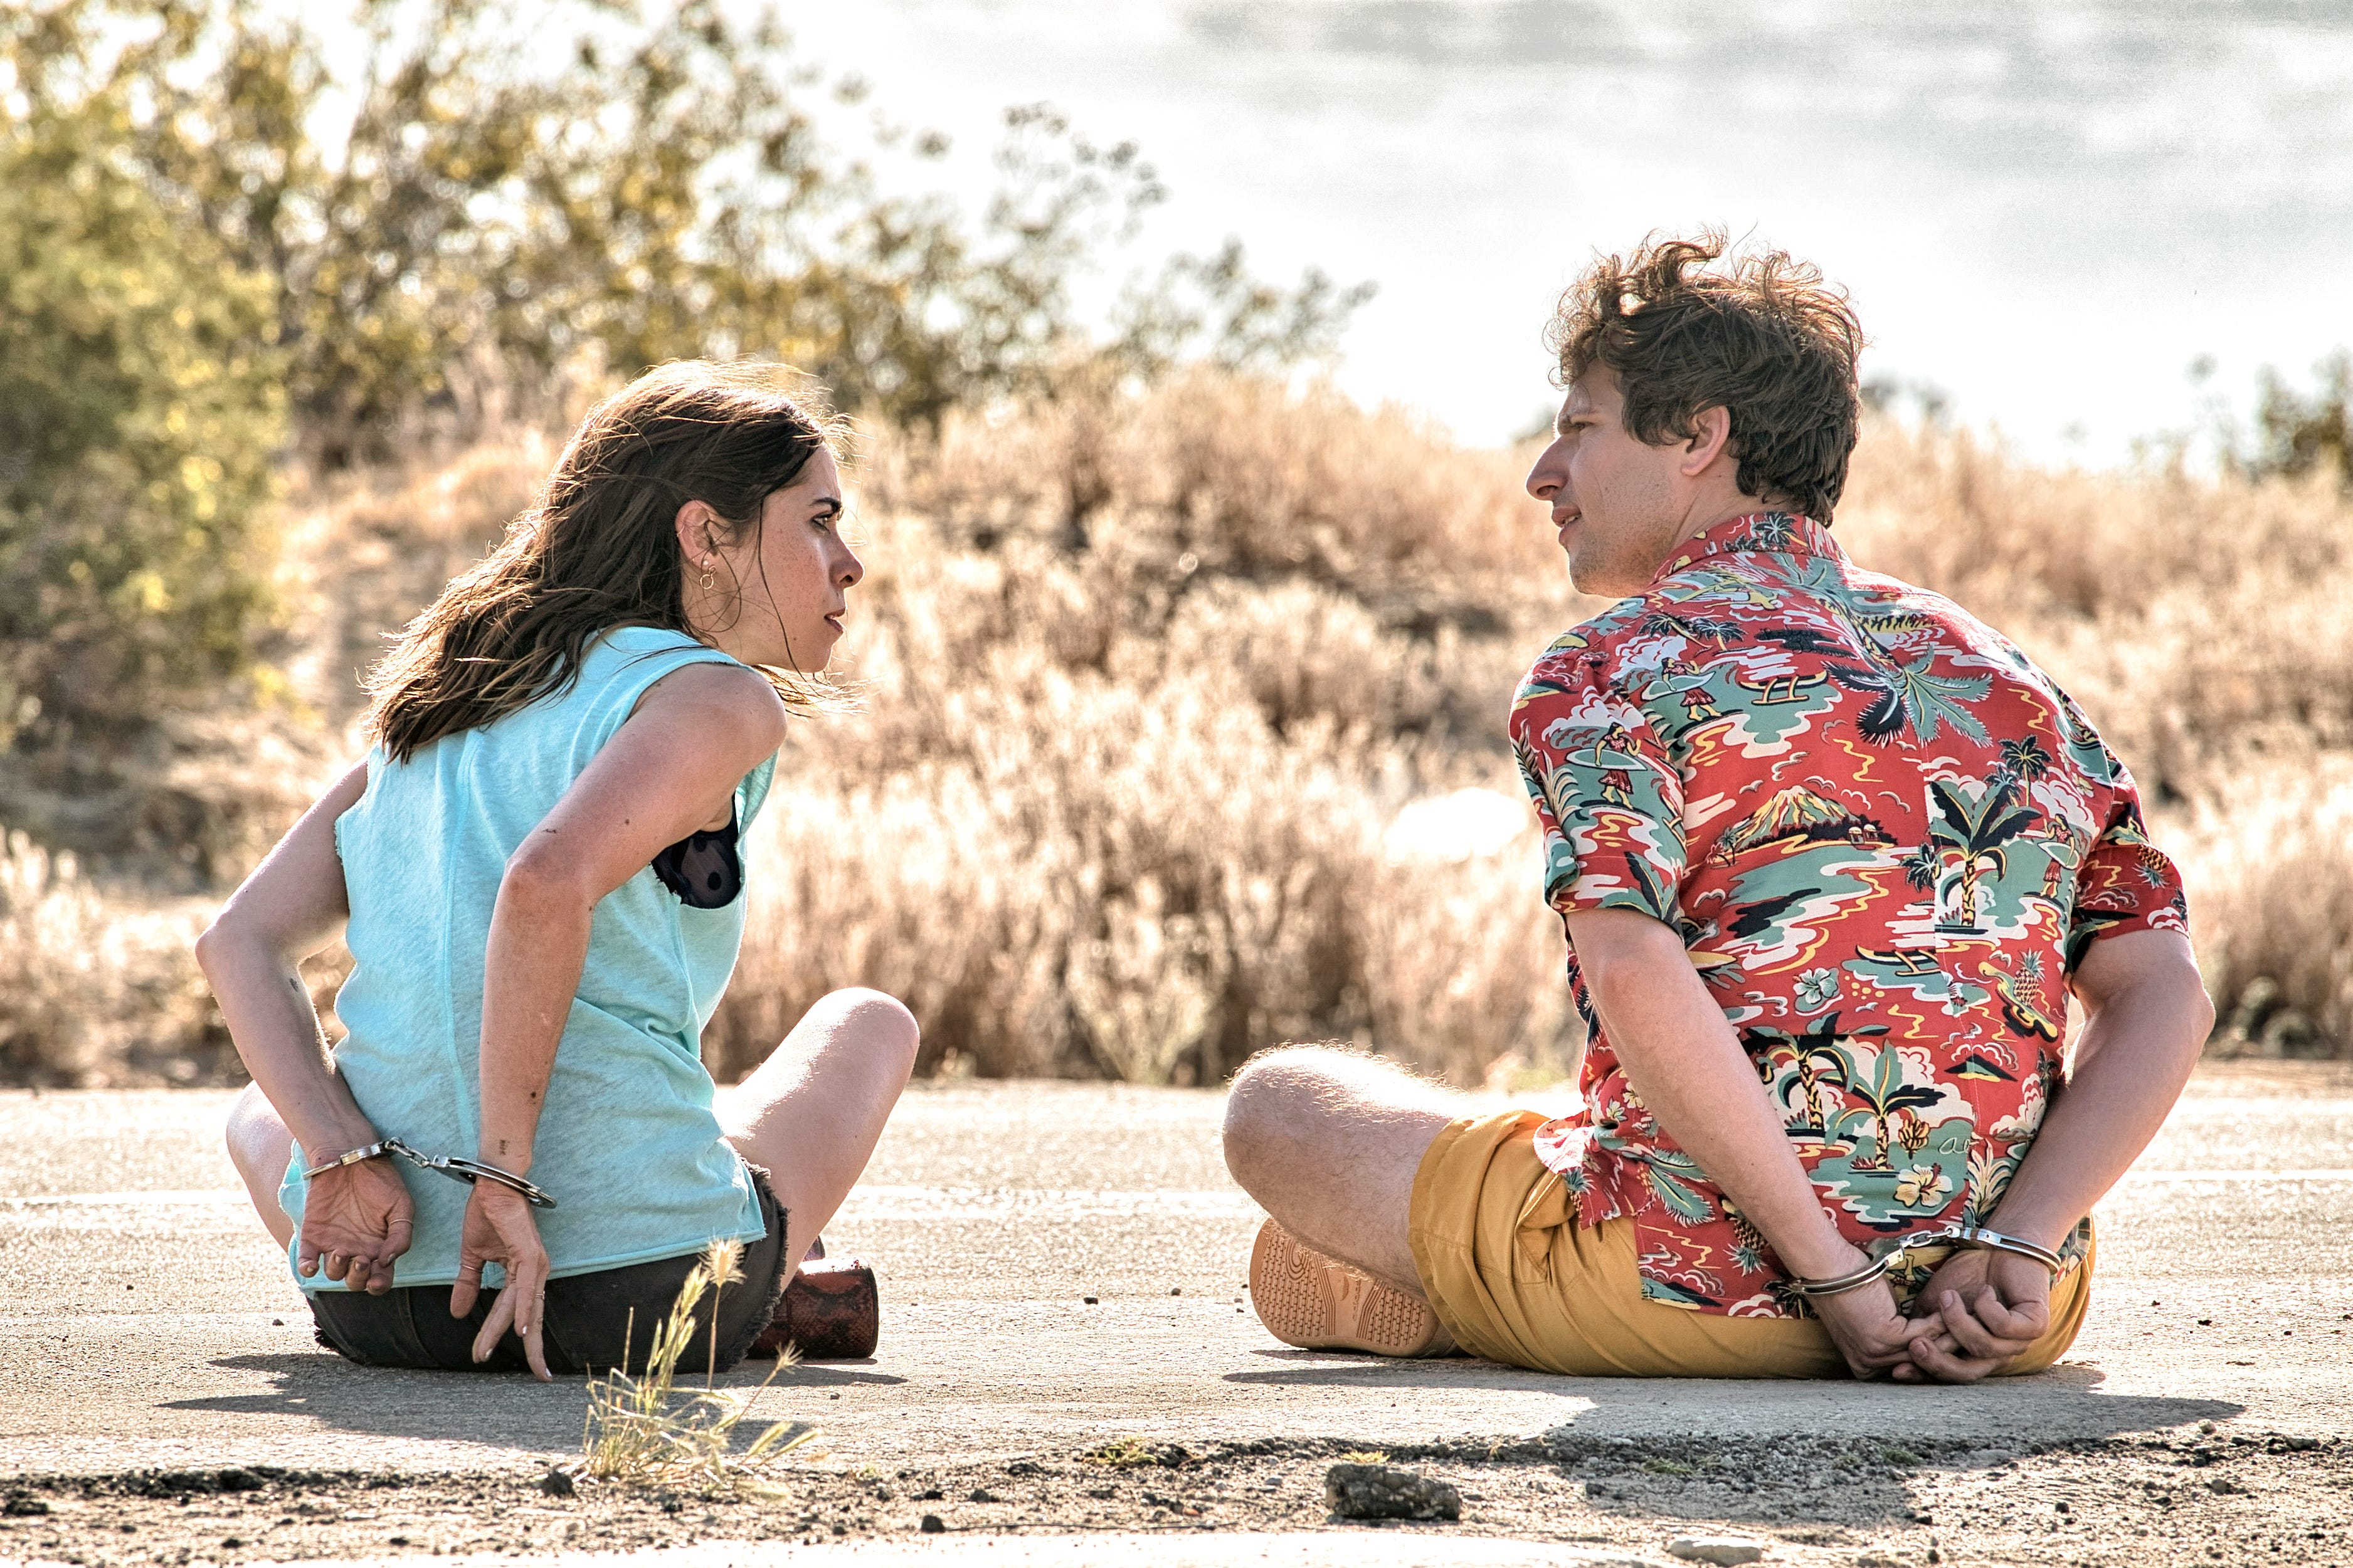 Review: Andy Samberg's 'Palm Springs' is fun but missing the city itself